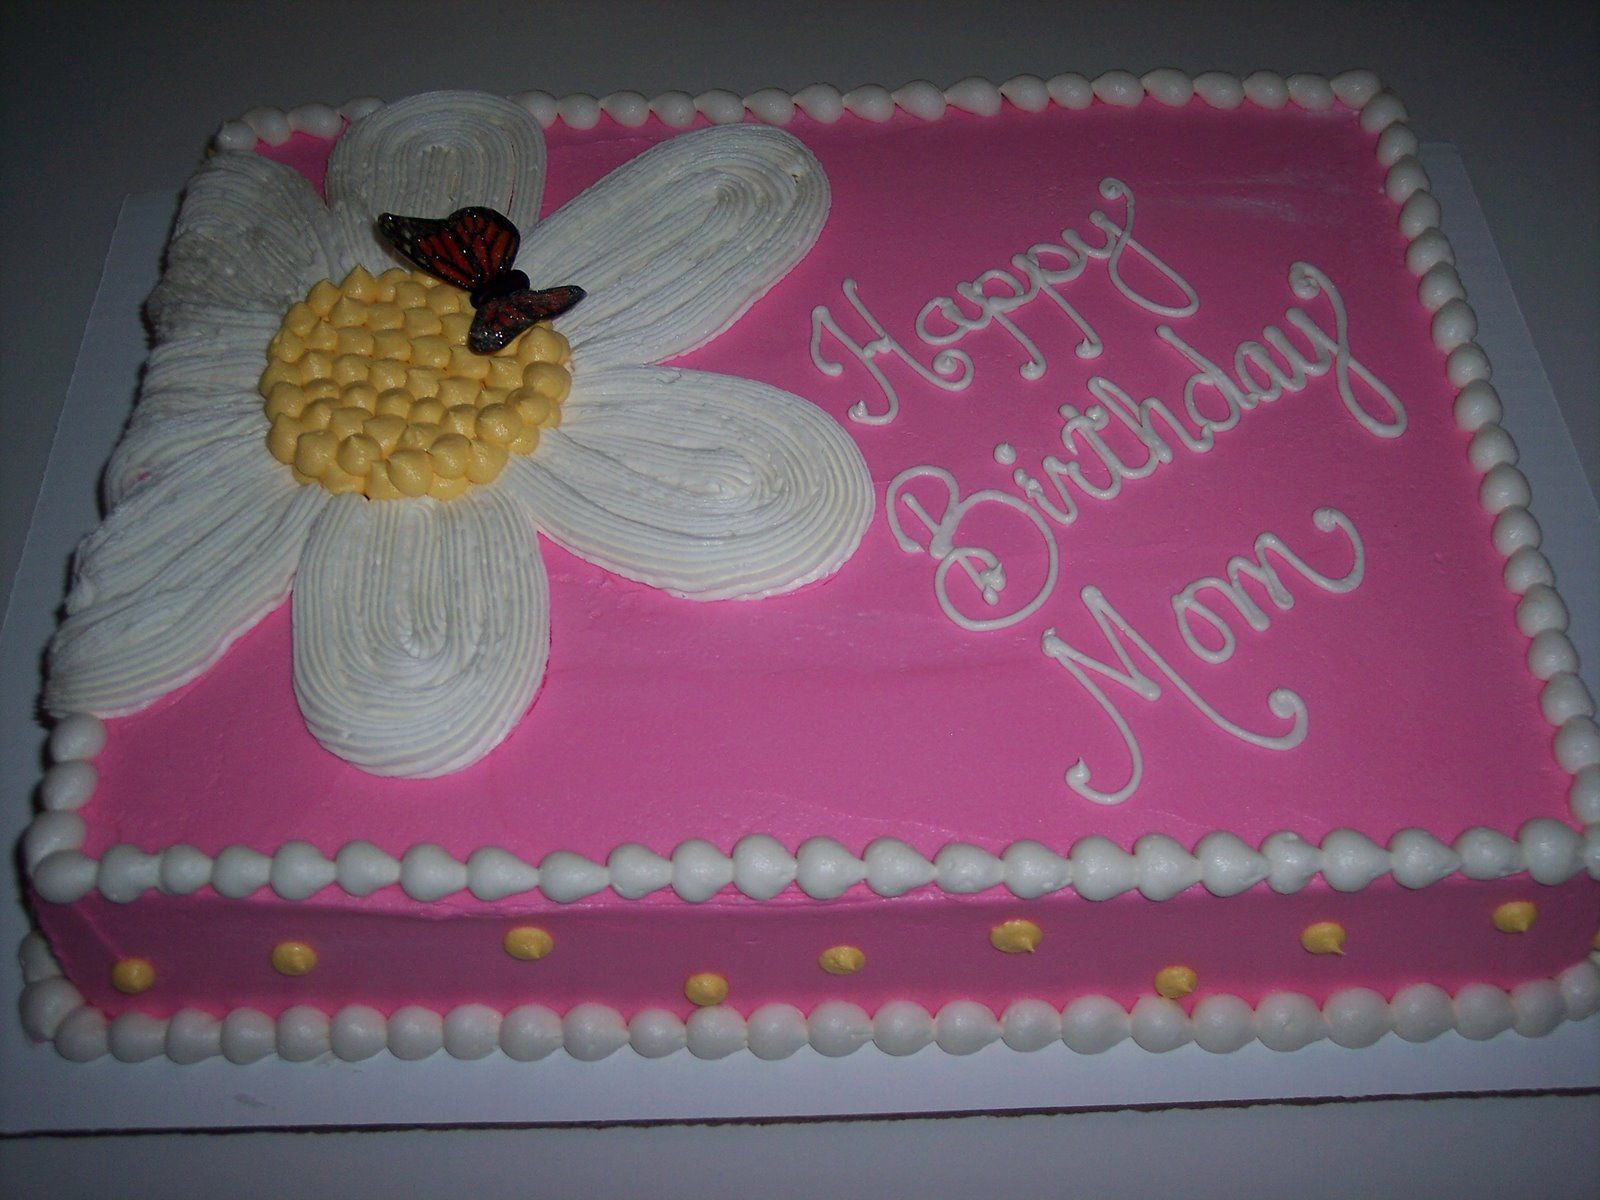 Birthday Cake Designs For Adults Adult Birthday Cakes Cake Decorating Ideas Pinterest Cake